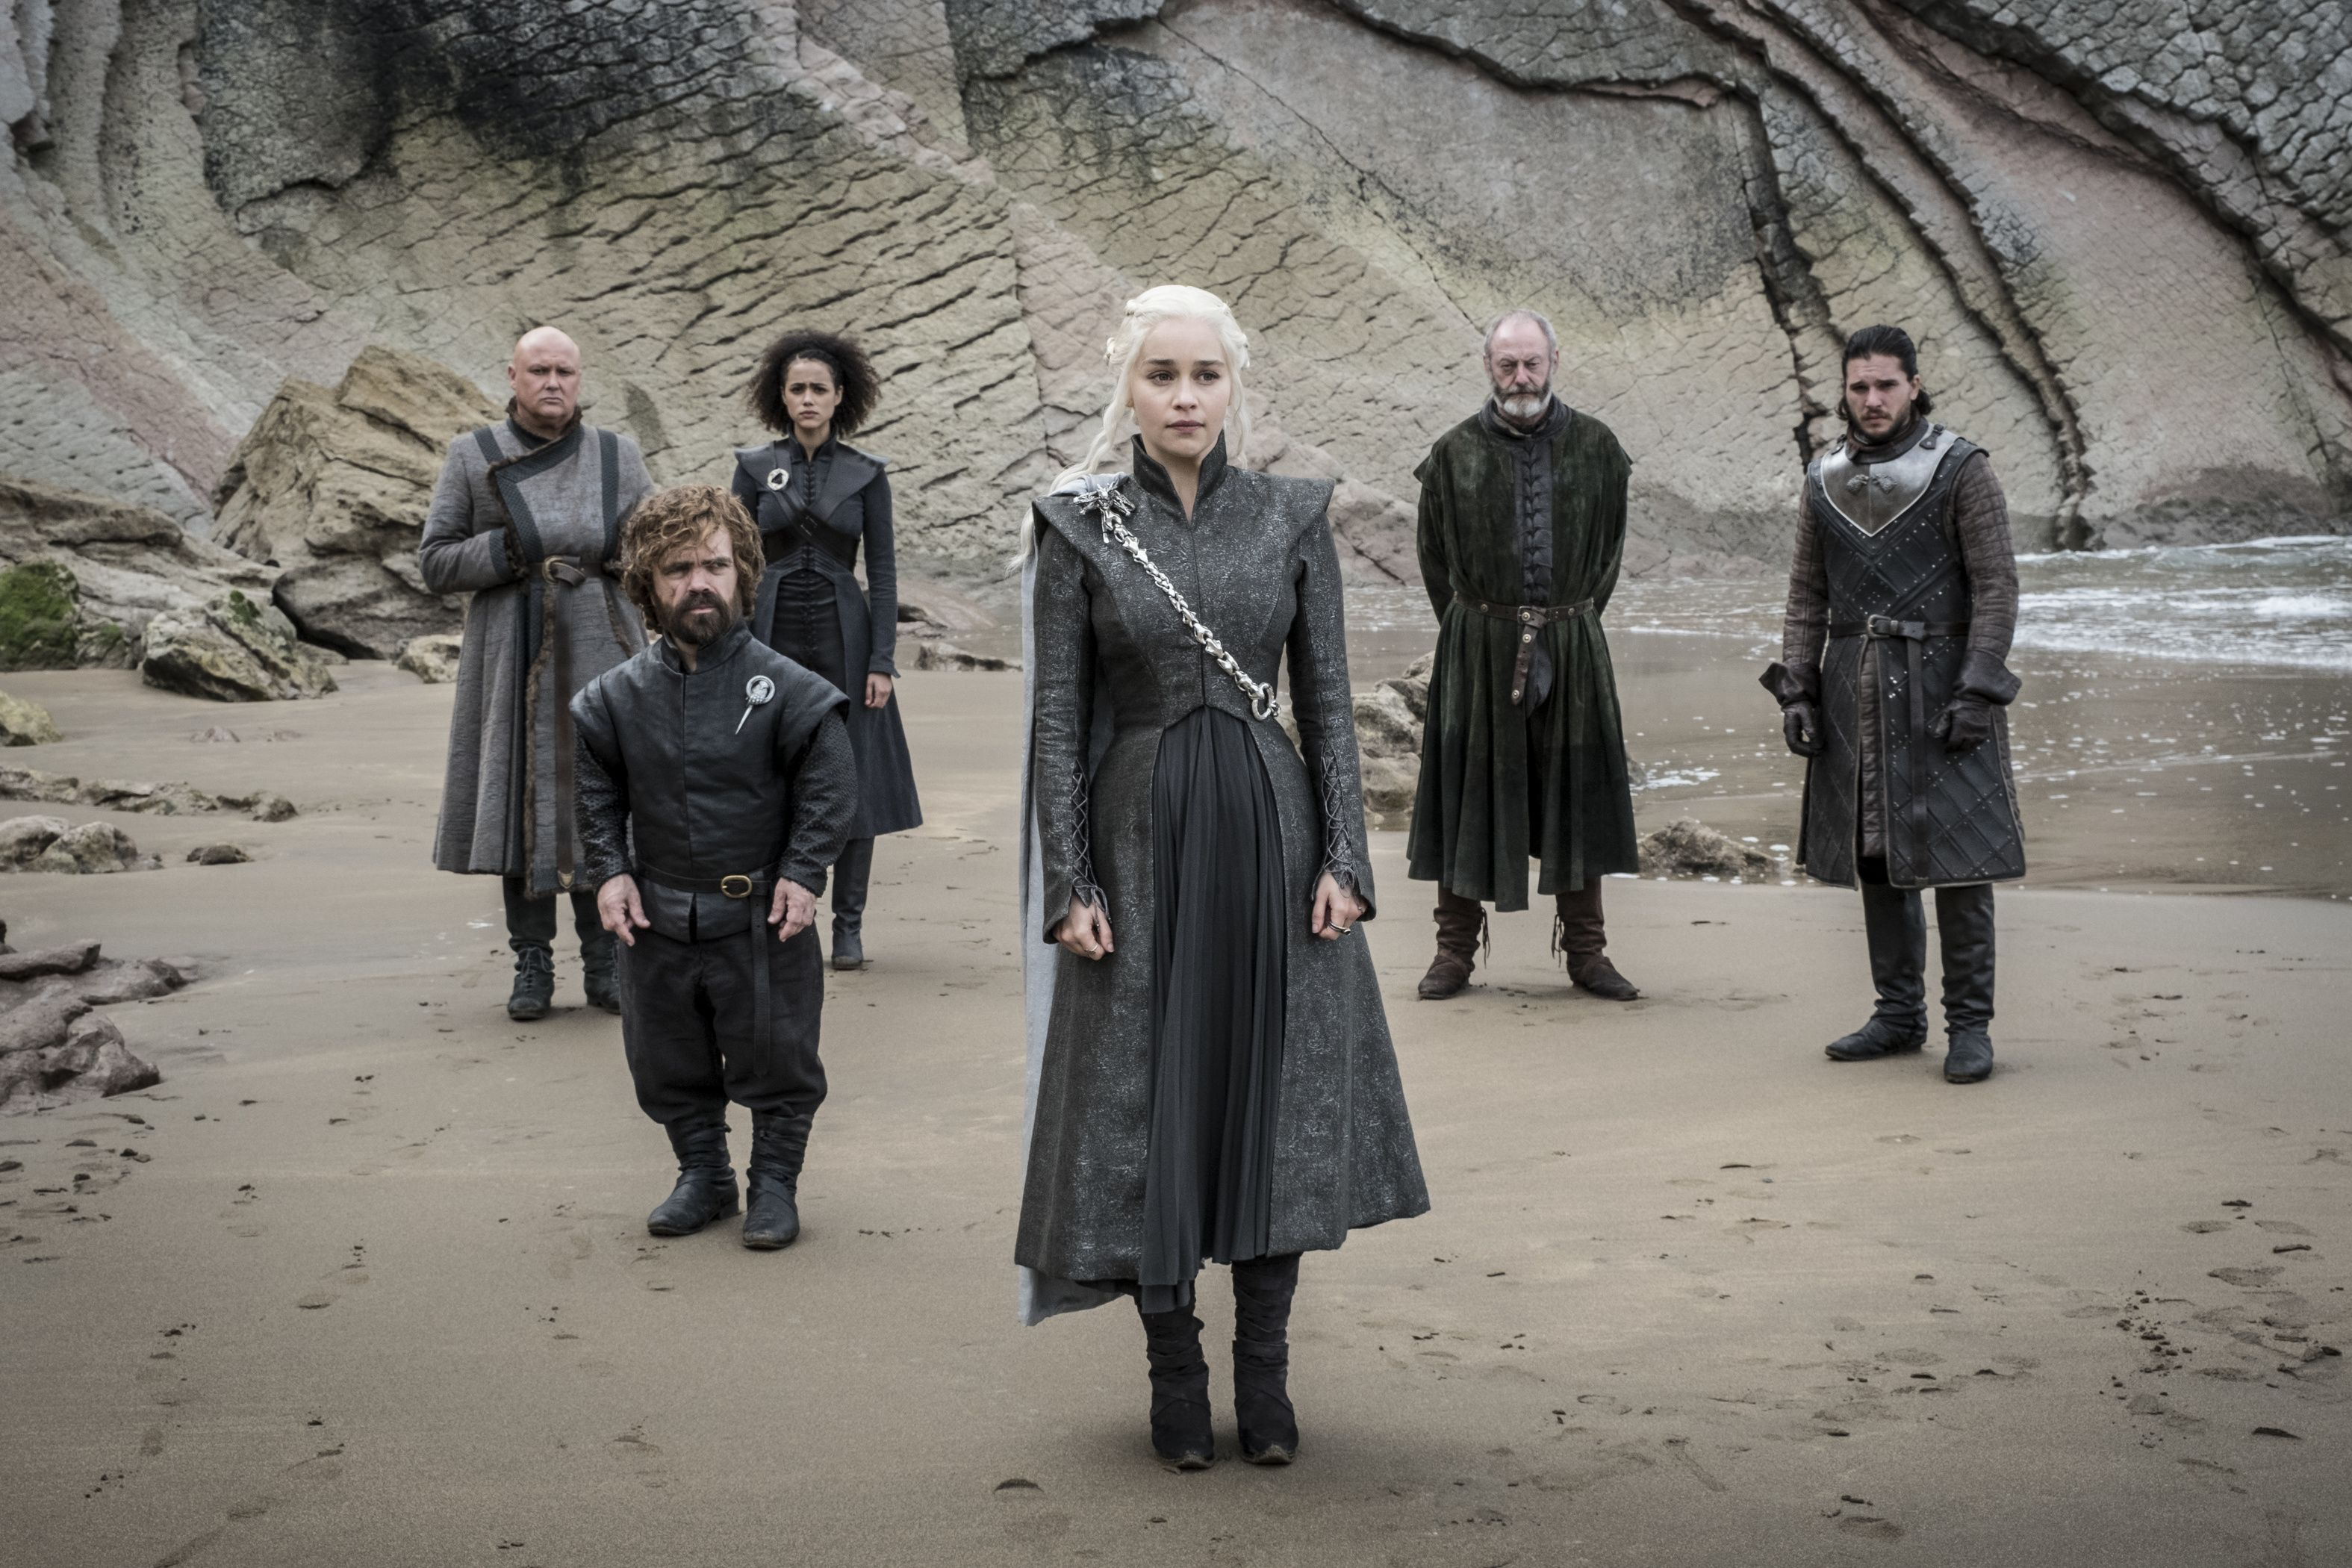 Game of Thrones seasons 1-8 are finally available to watch on demand again